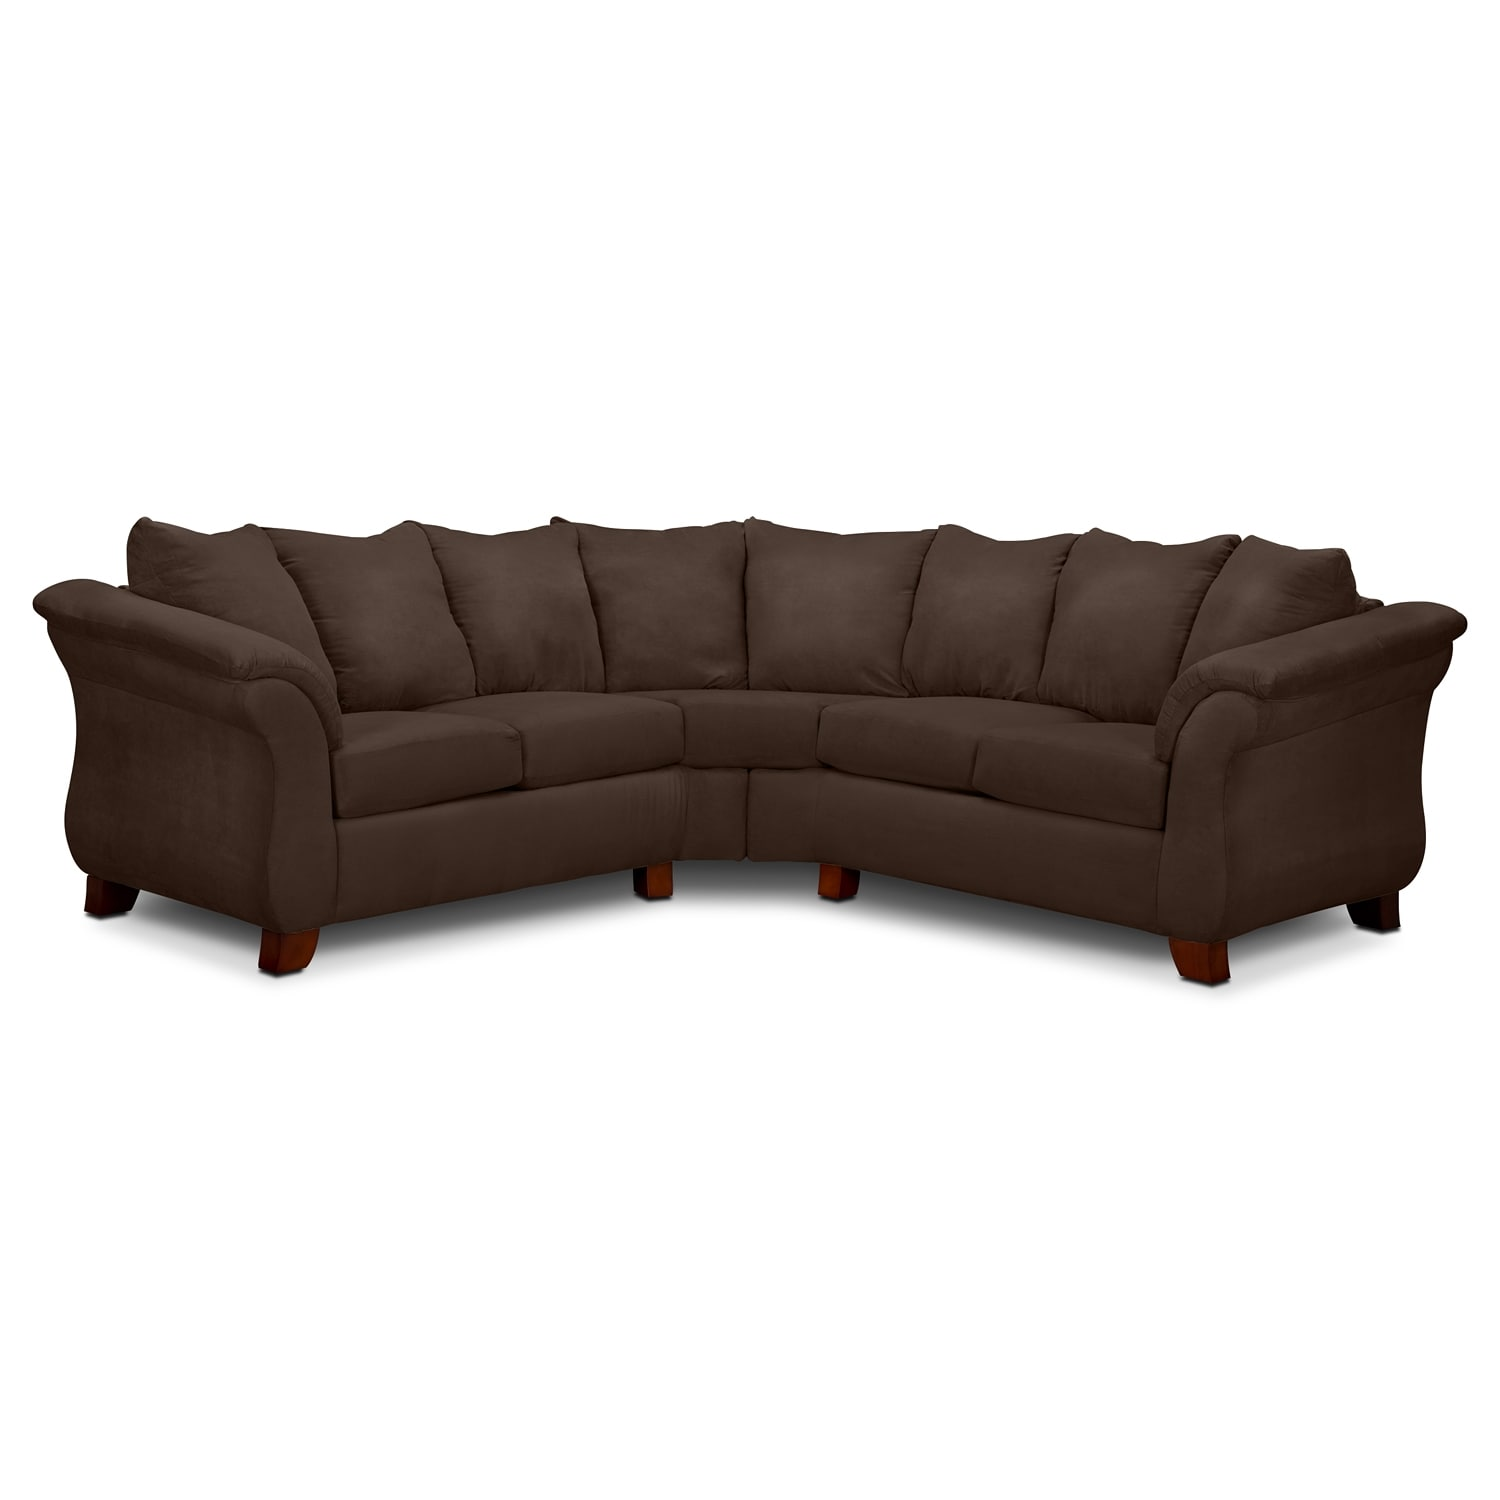 Adrian chocolate ii 2 pc sectional value city furniture for Living room furniture sectionals